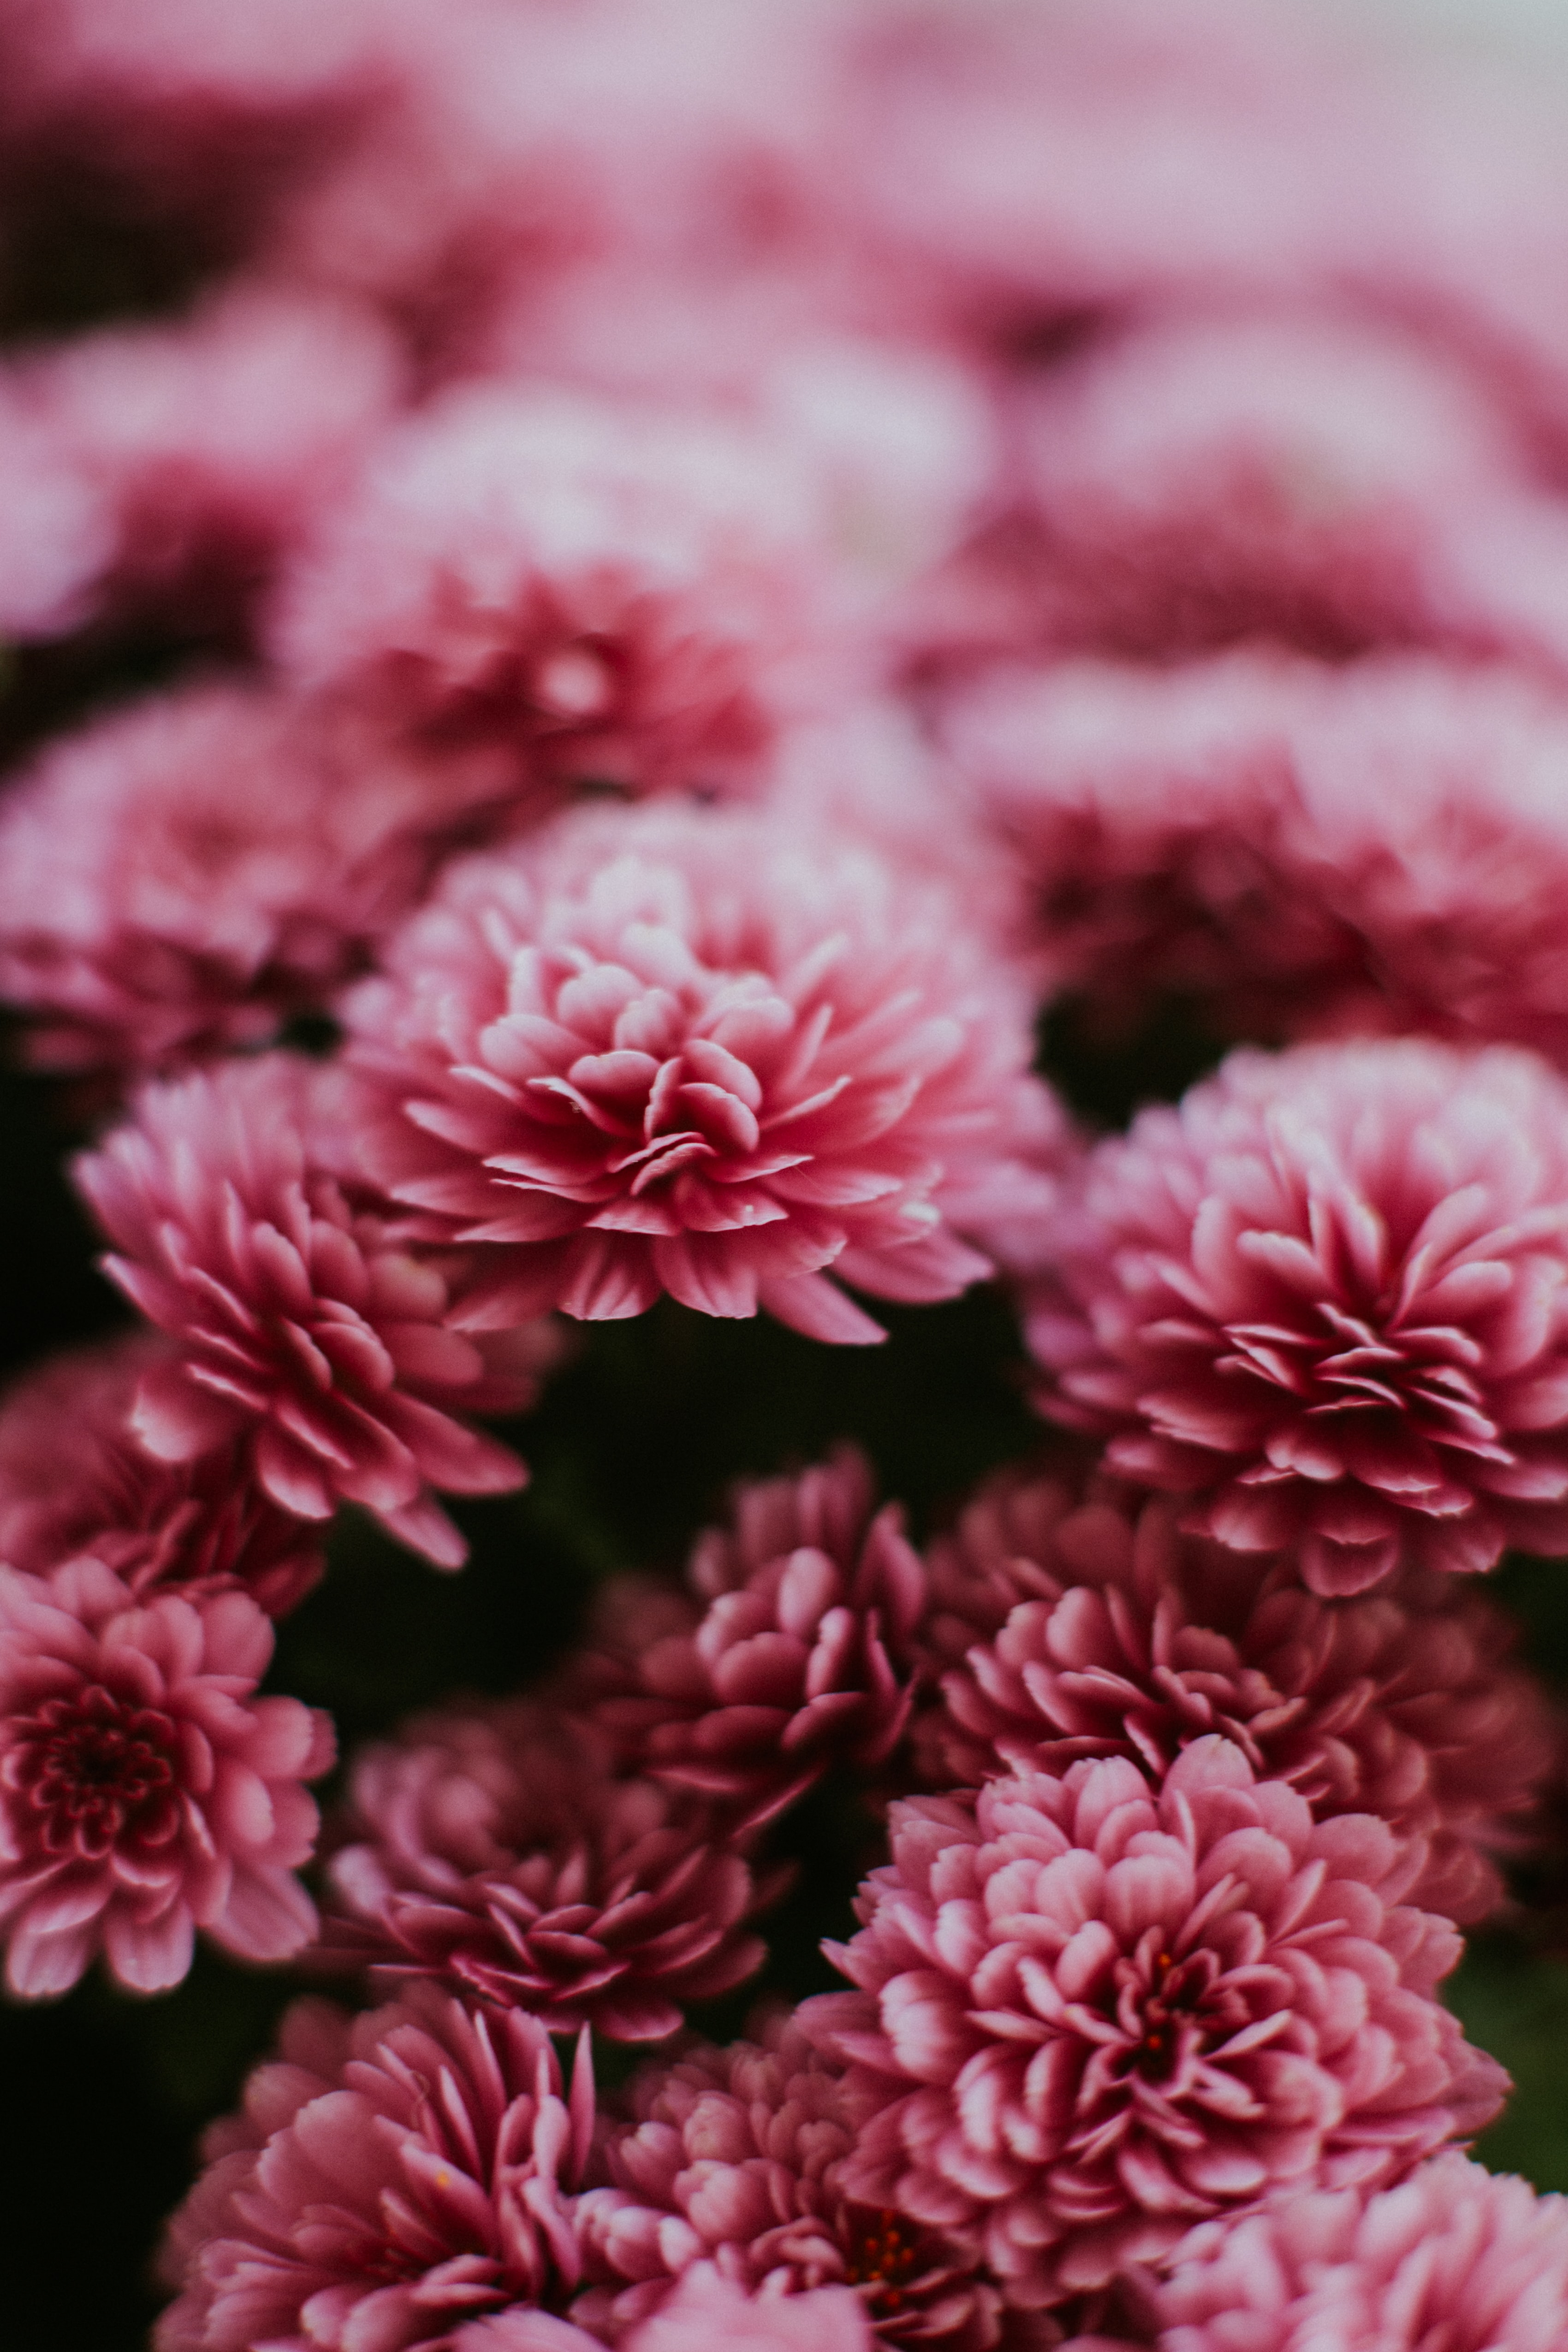 70123 download wallpaper Macro, Chrysanthemum, Pink, Flowers screensavers and pictures for free